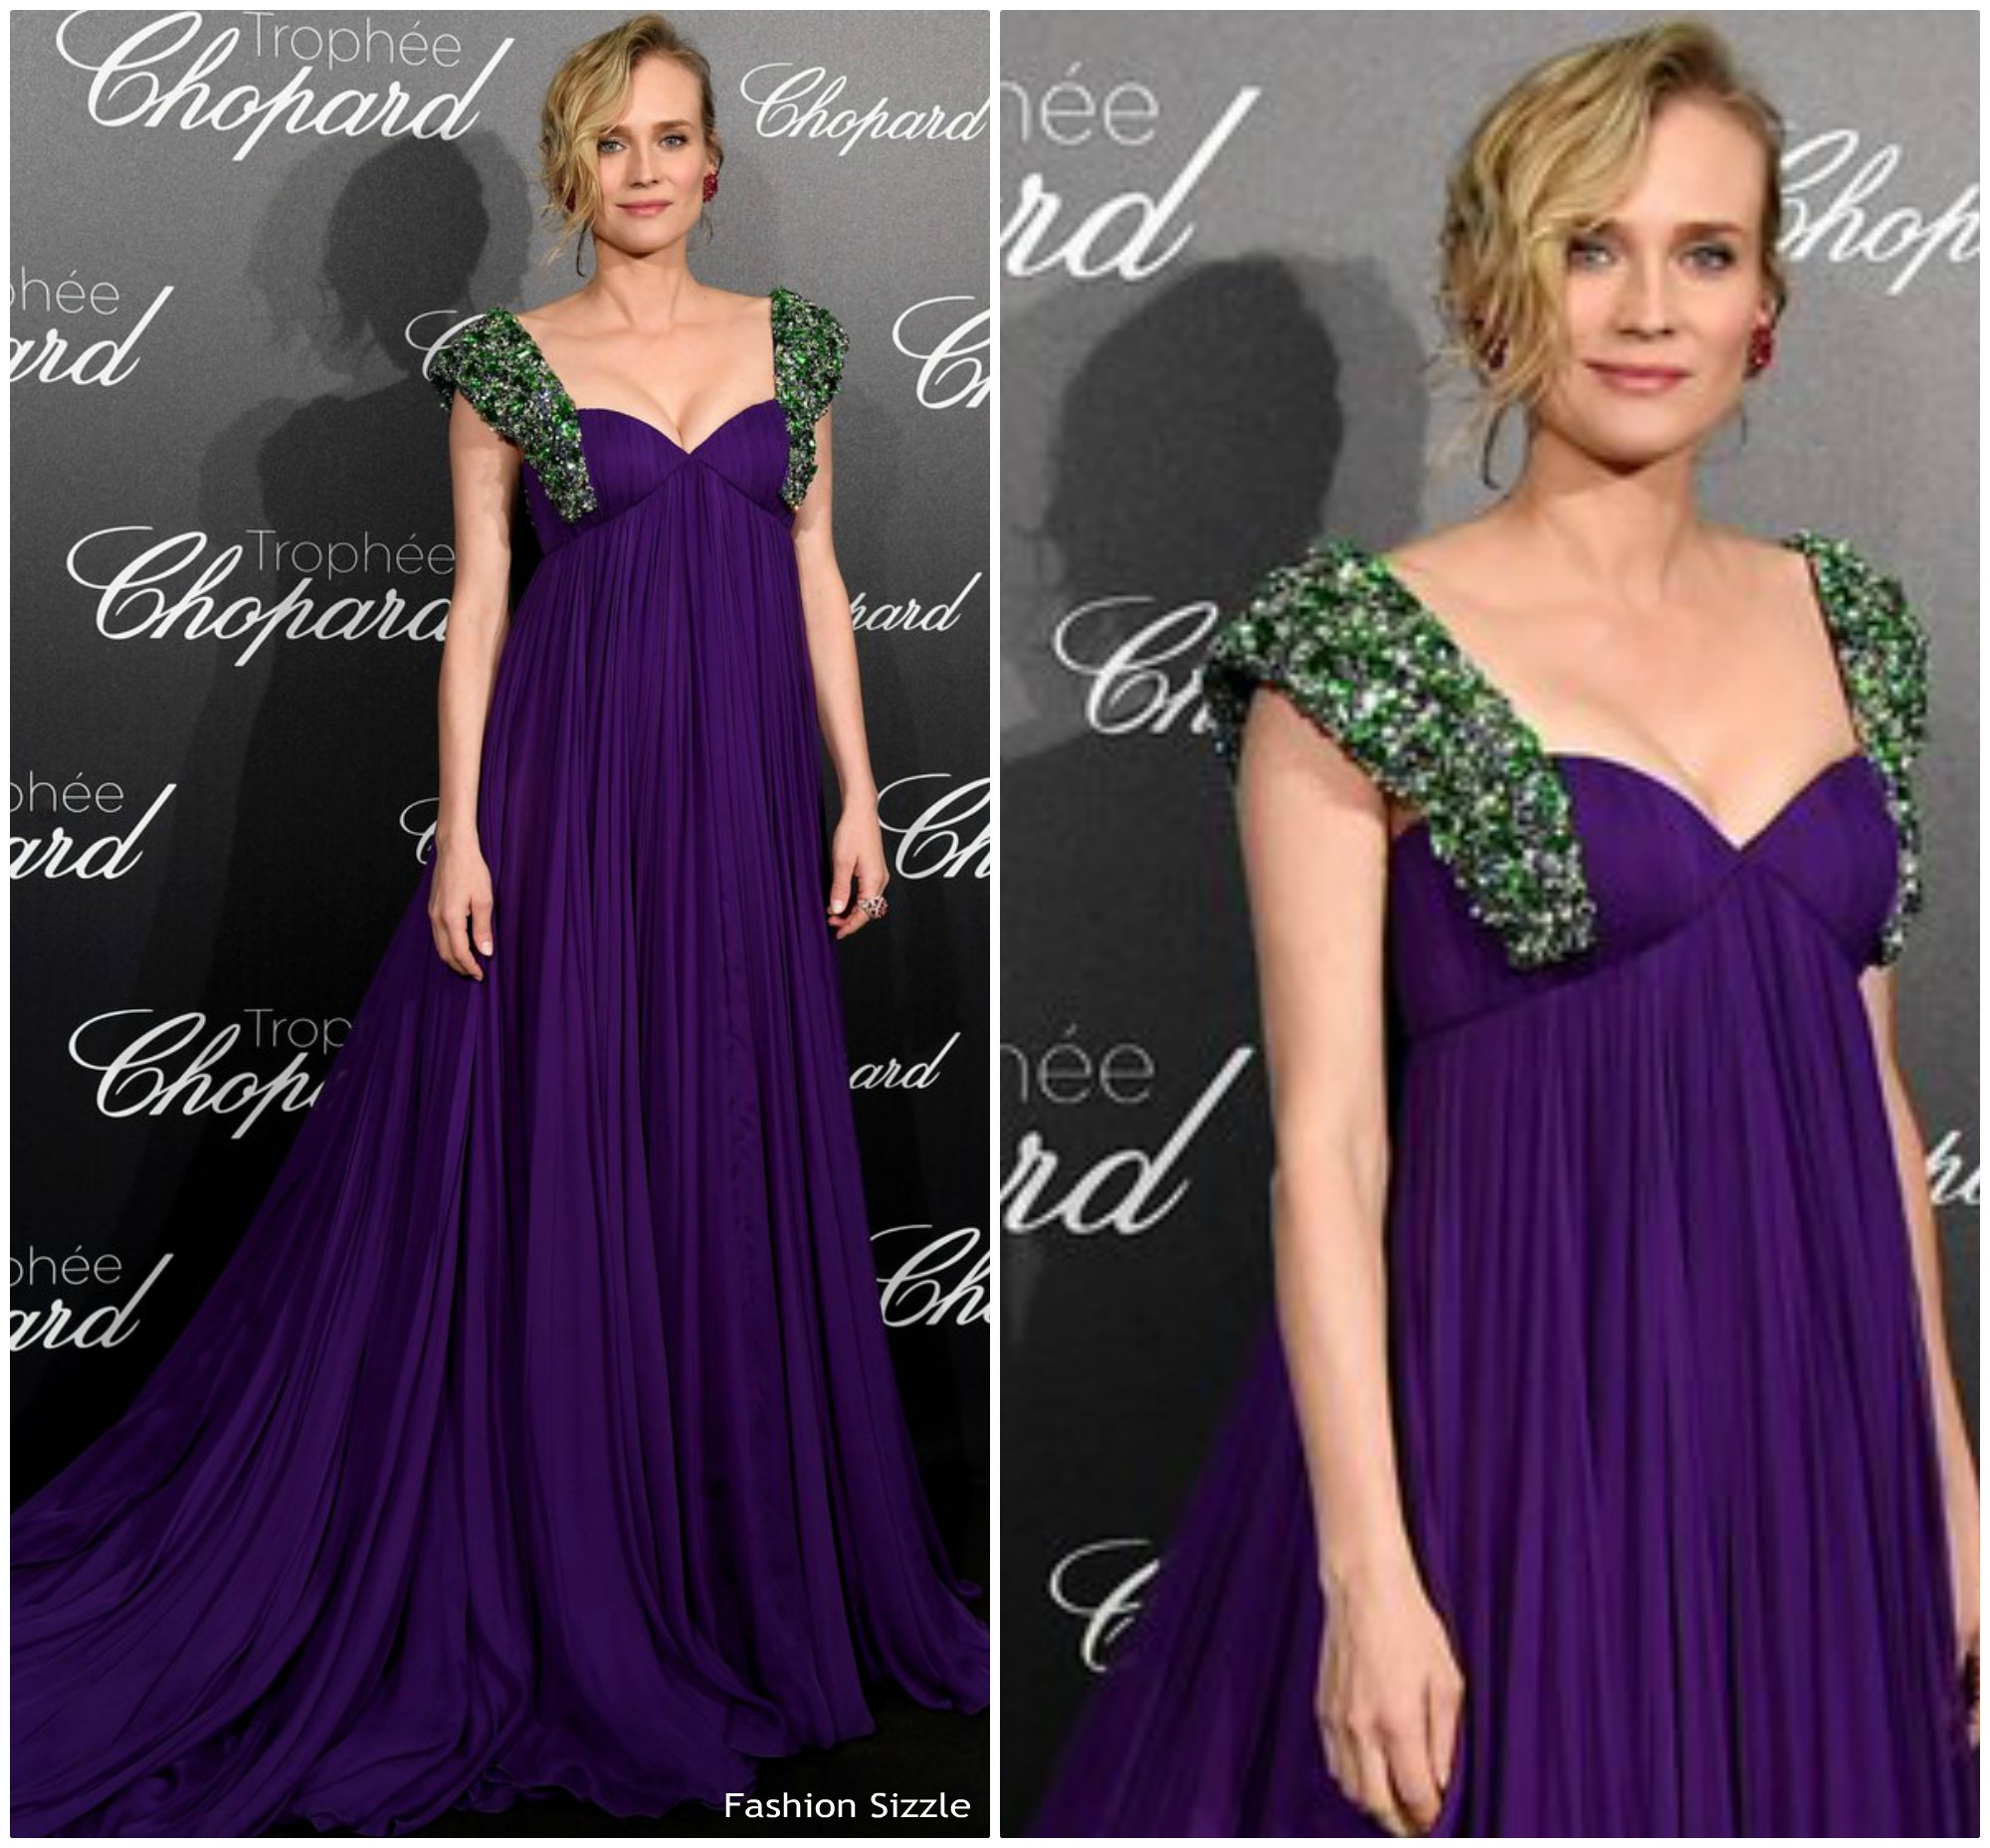 Diane Kruger In Prada   Chopard Trophée Cannes 2018 Event ... fb32882797c